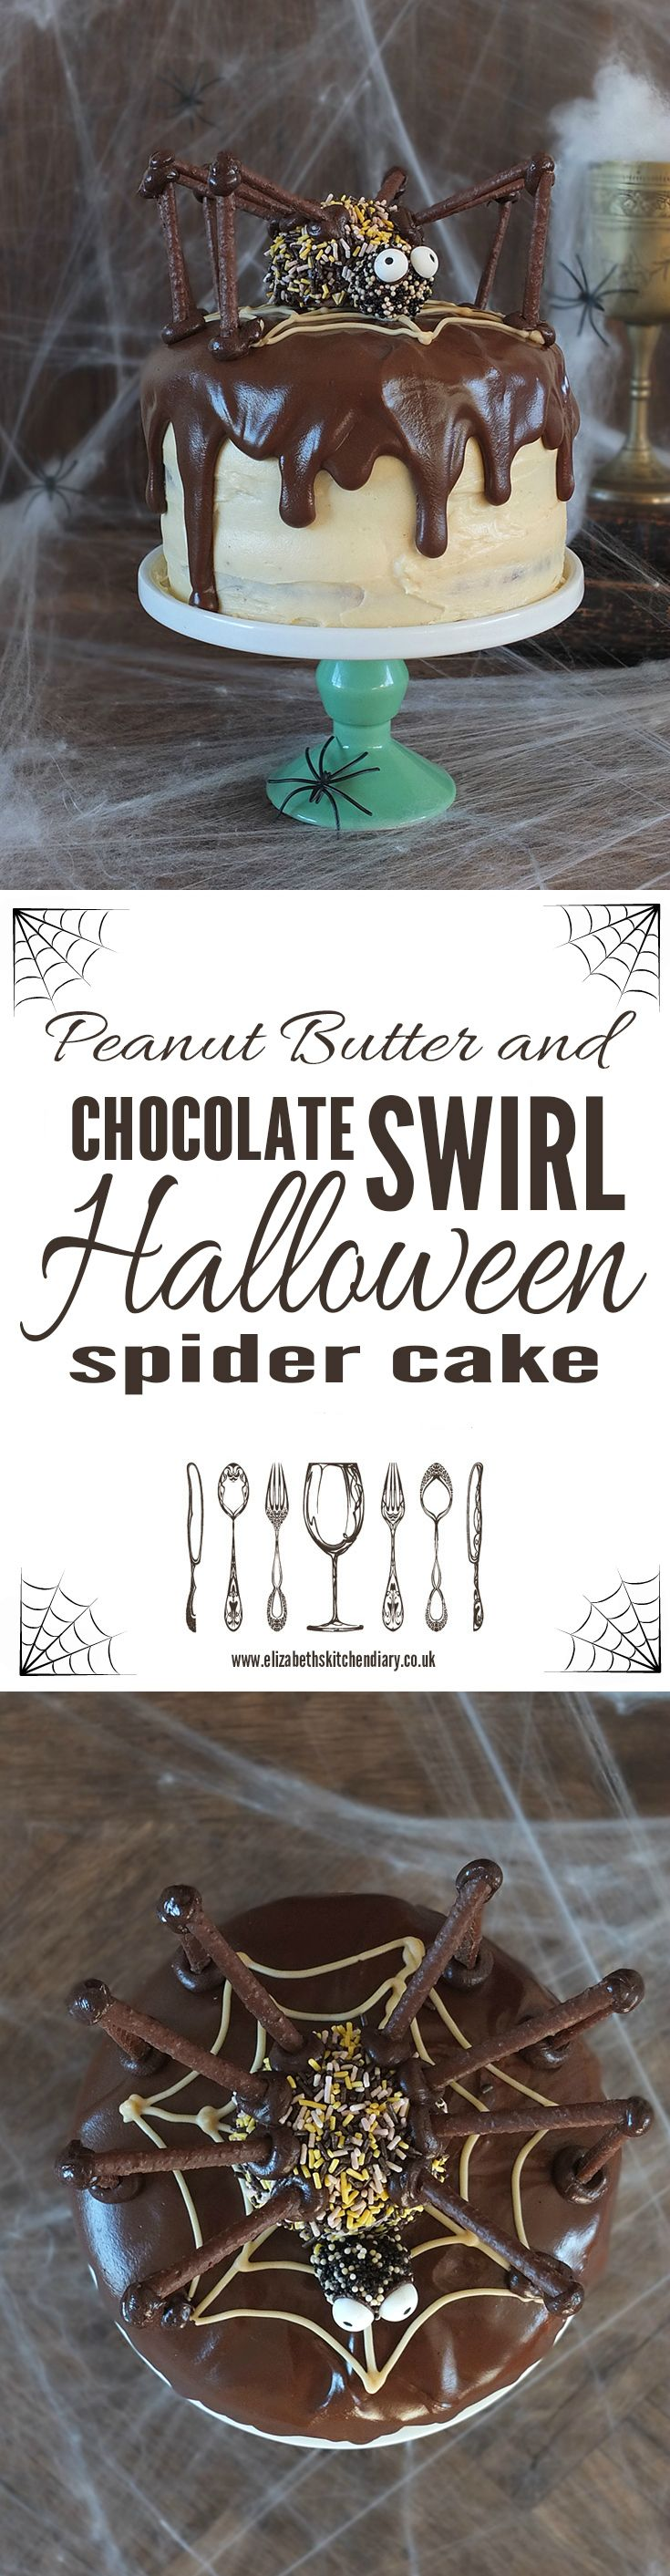 Three layers of chocolate and peanut butter swirl cake sandwiched together with peanut buttercream and topped with chocolate ganache and a giant candy spider. What's not to love?!